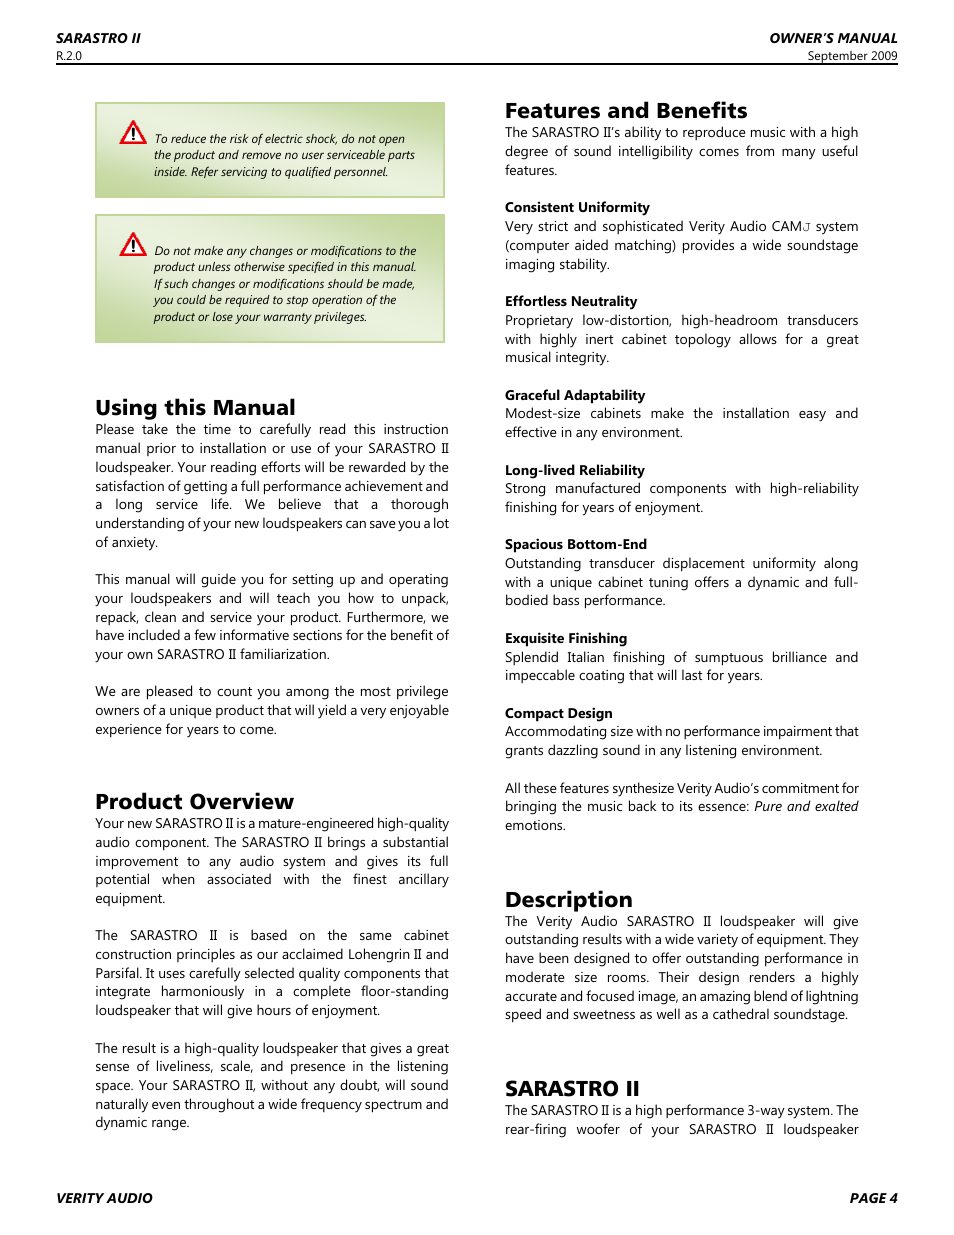 Using this manual, Product overview, Features and benefits